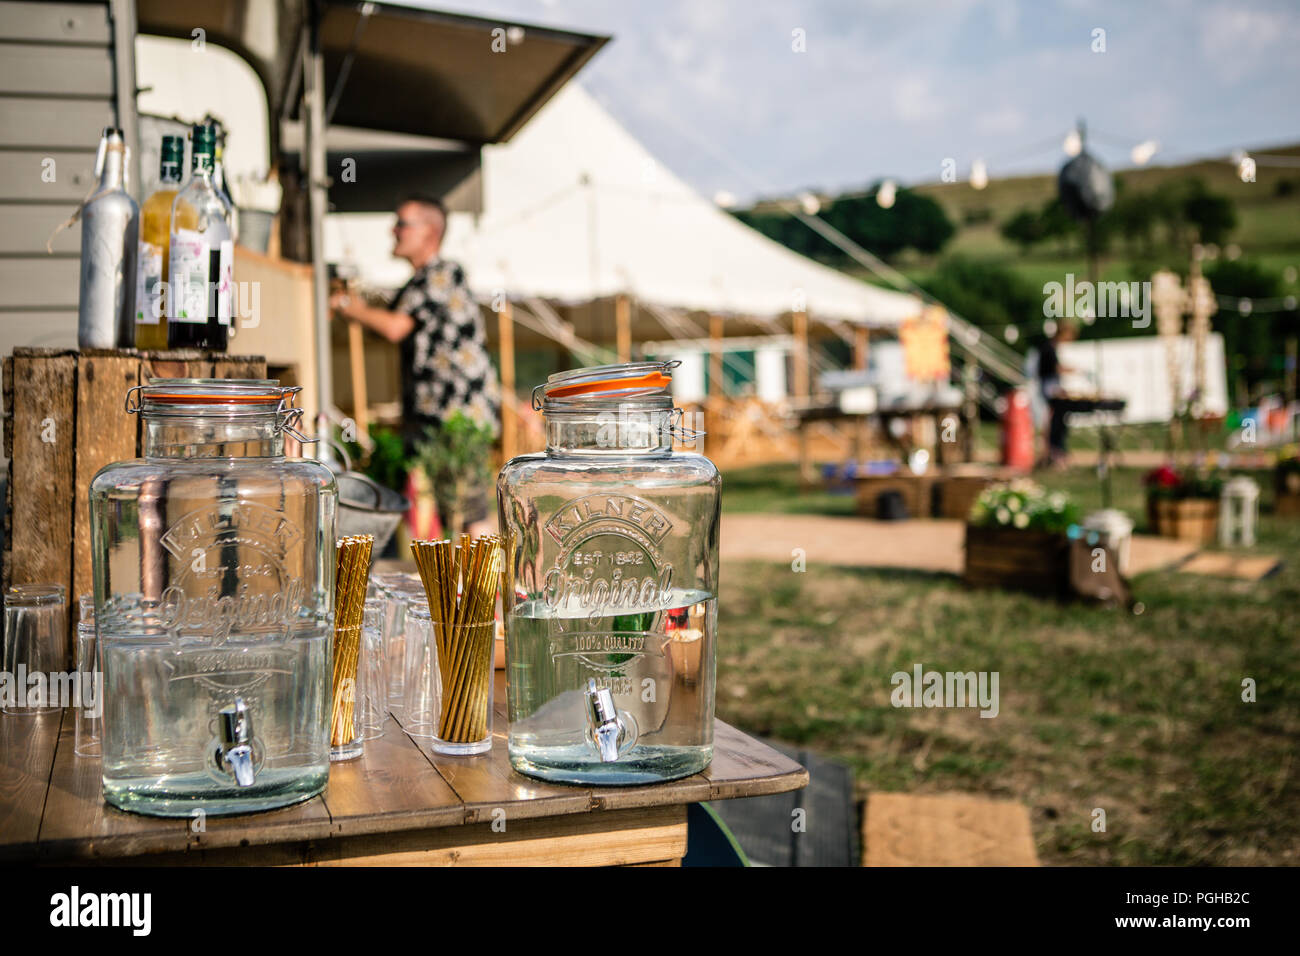 2 large kilner glass water dispensers at festival - Stock Image